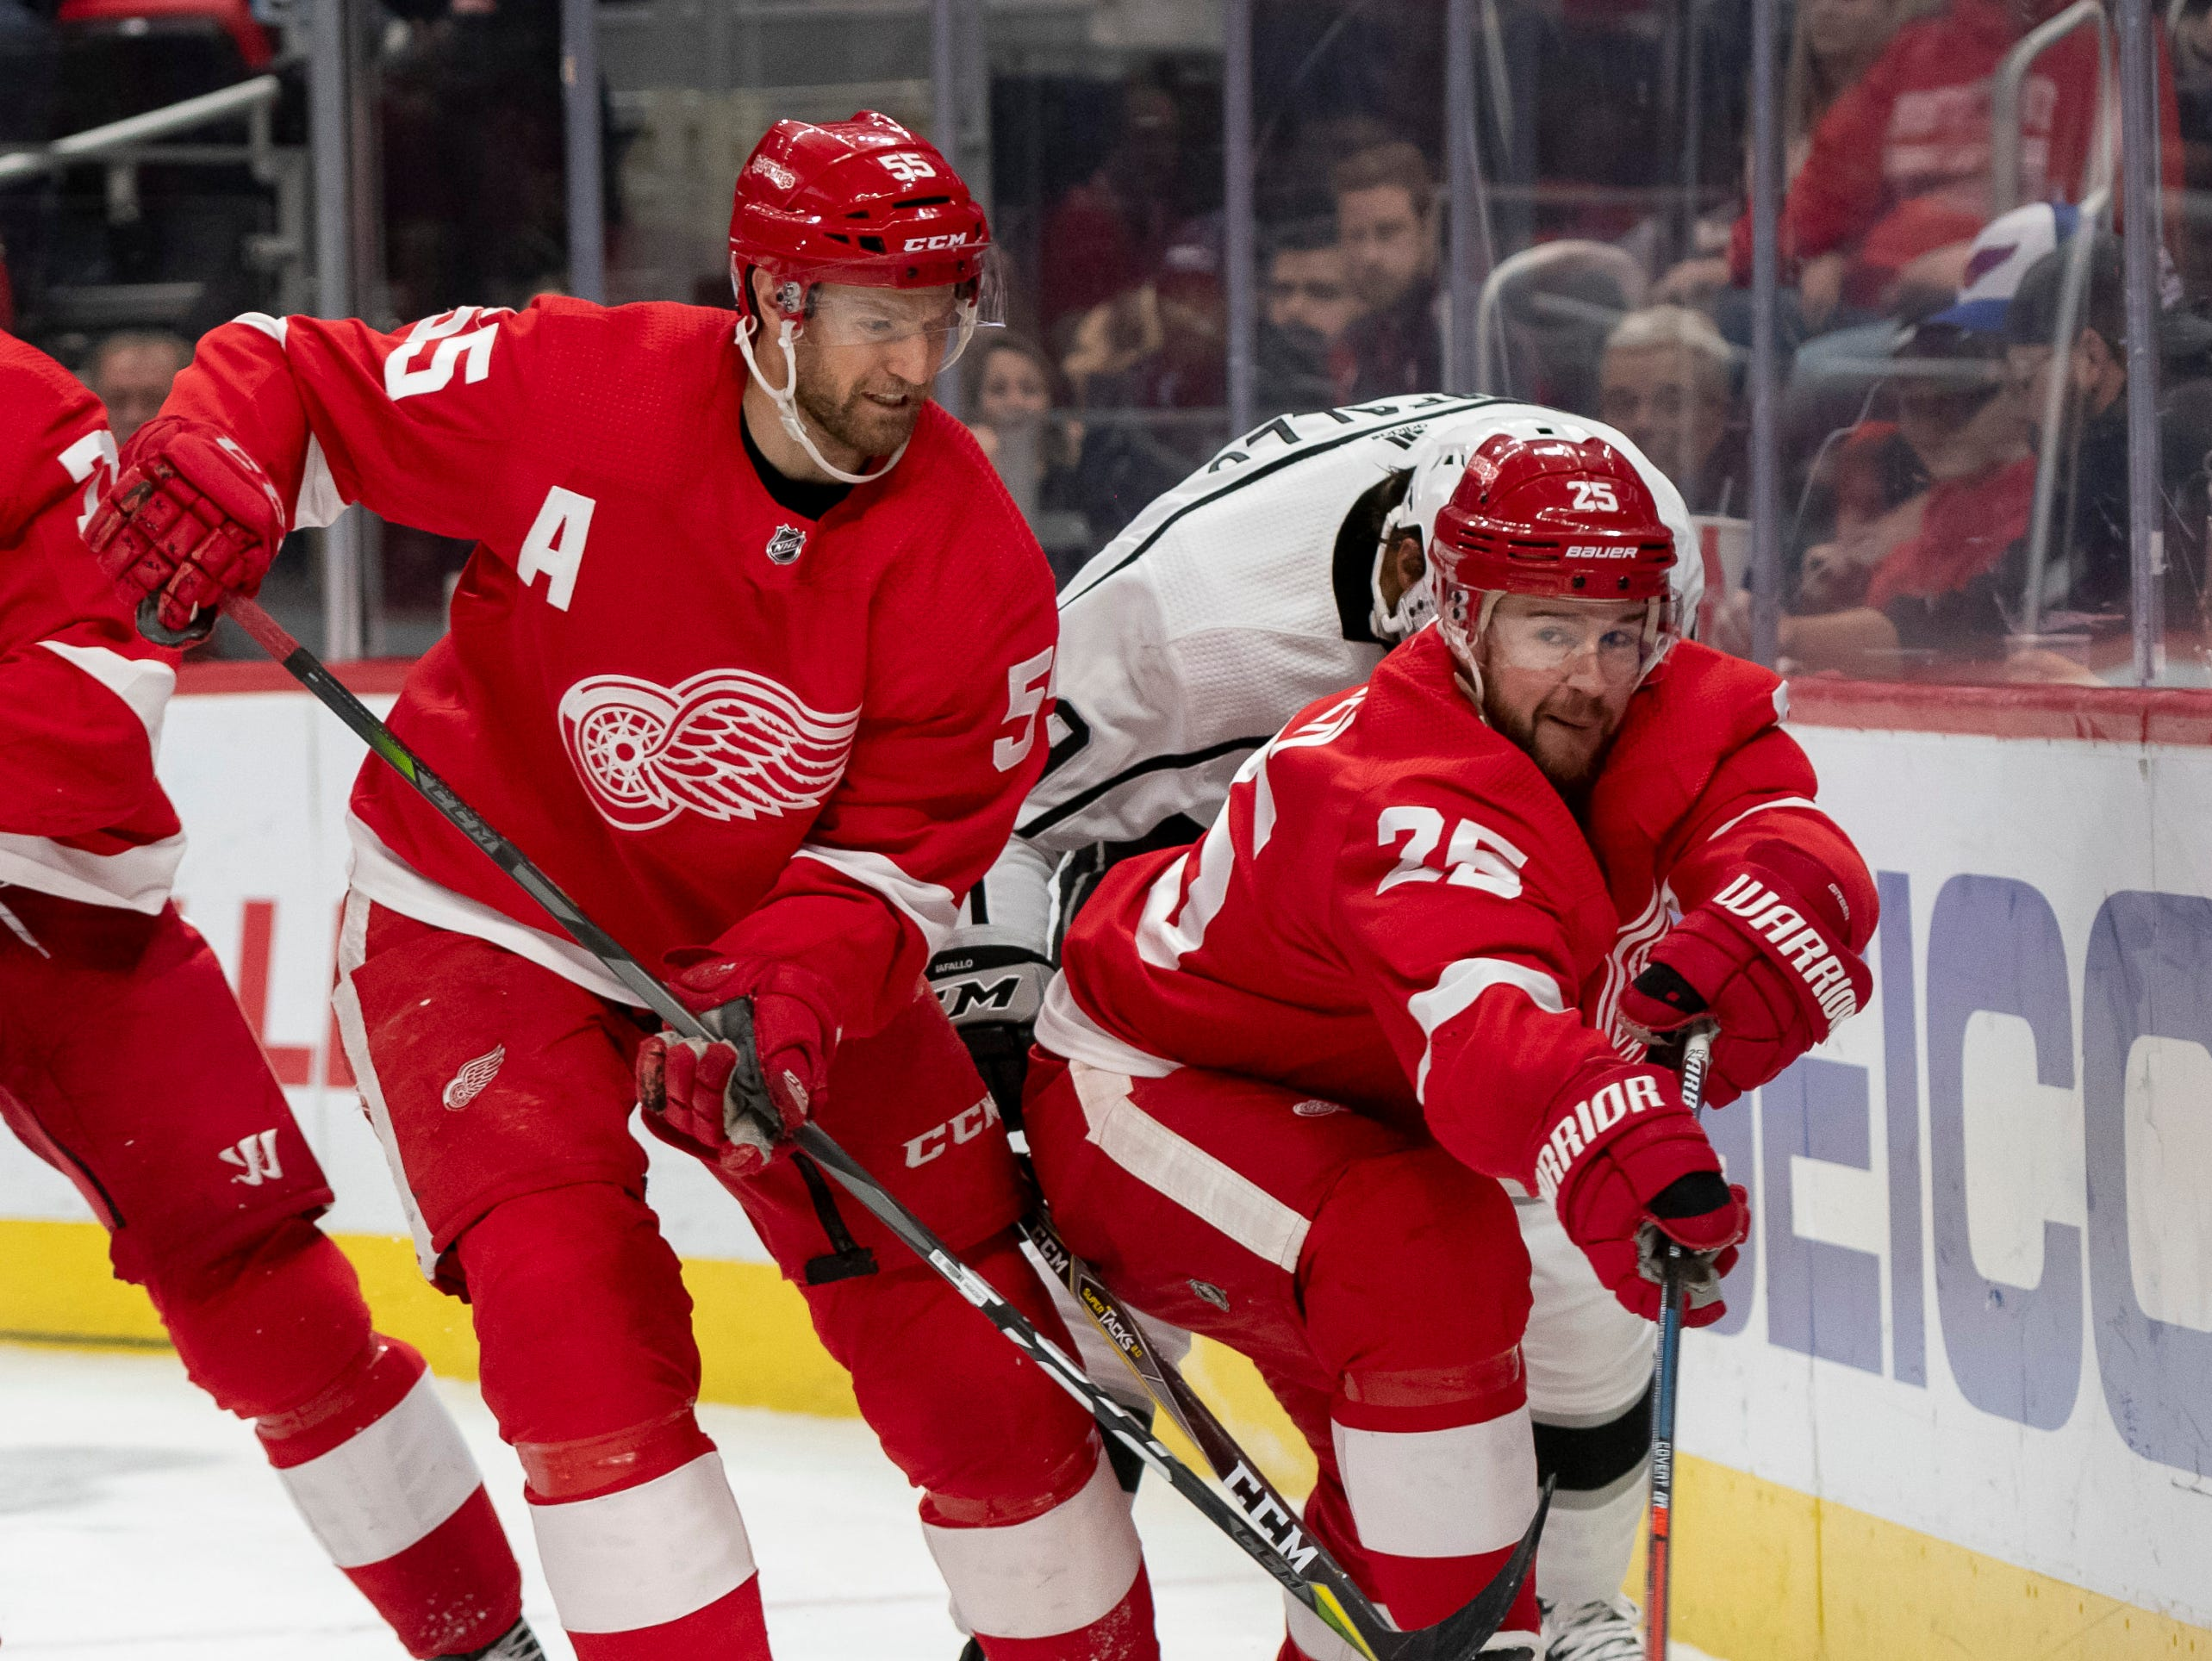 Detroit defensemen Niklas Kronwall, left, and Mike Green            Photos are of the Detroit Red Wings vs. the Los Angeles Kings, at Little Caesars Arena, in Detroit, December 10, 2018.  (David Guralnick / The Detroit News)